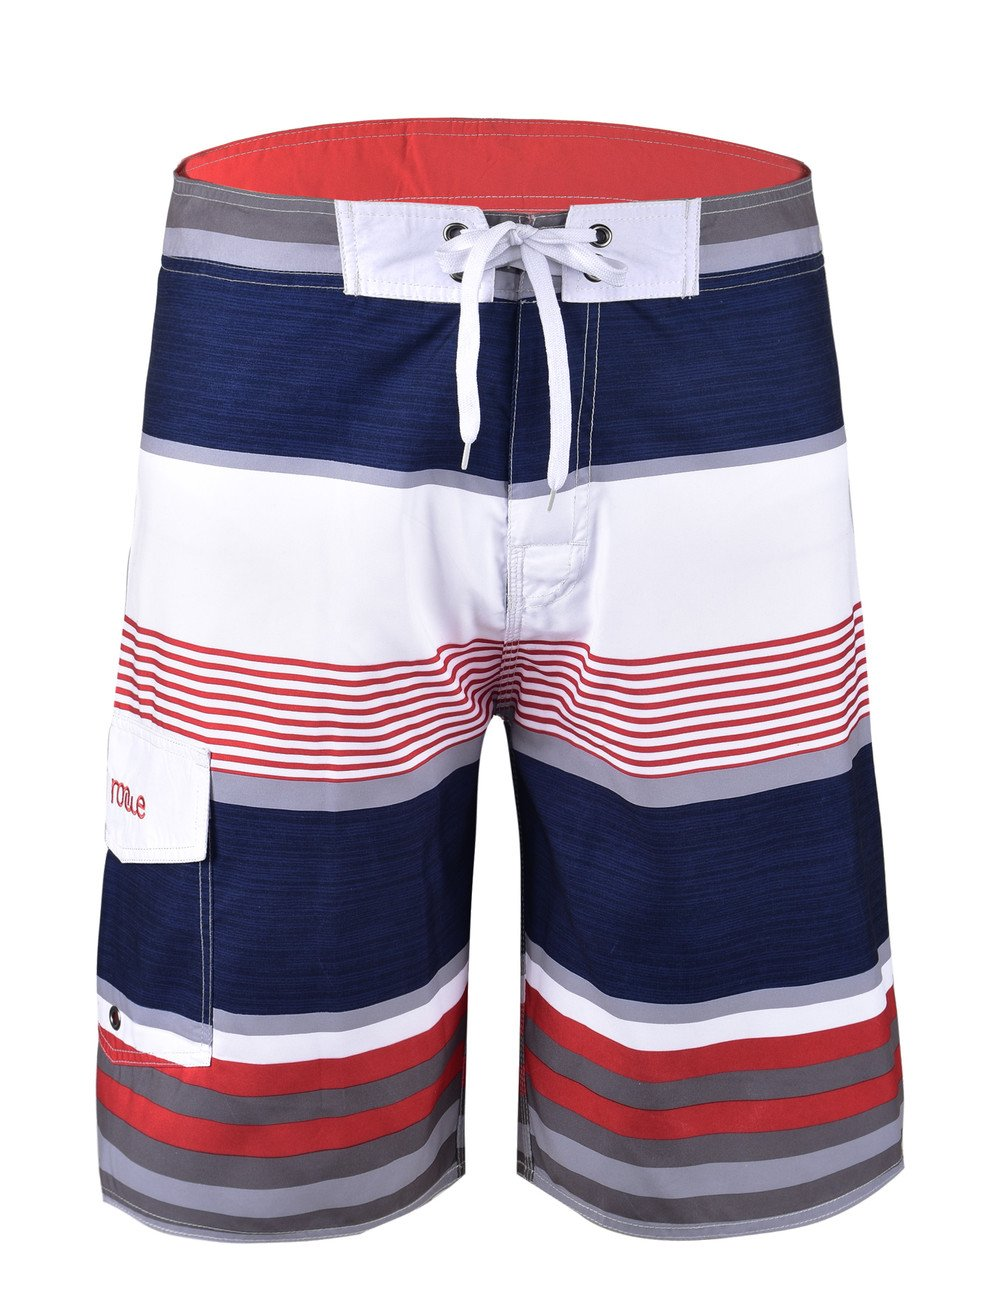 NONWE Men's Tropical Stripe Beach Shorts Swim Trunks with Mesh Lining Red Striped with White 38